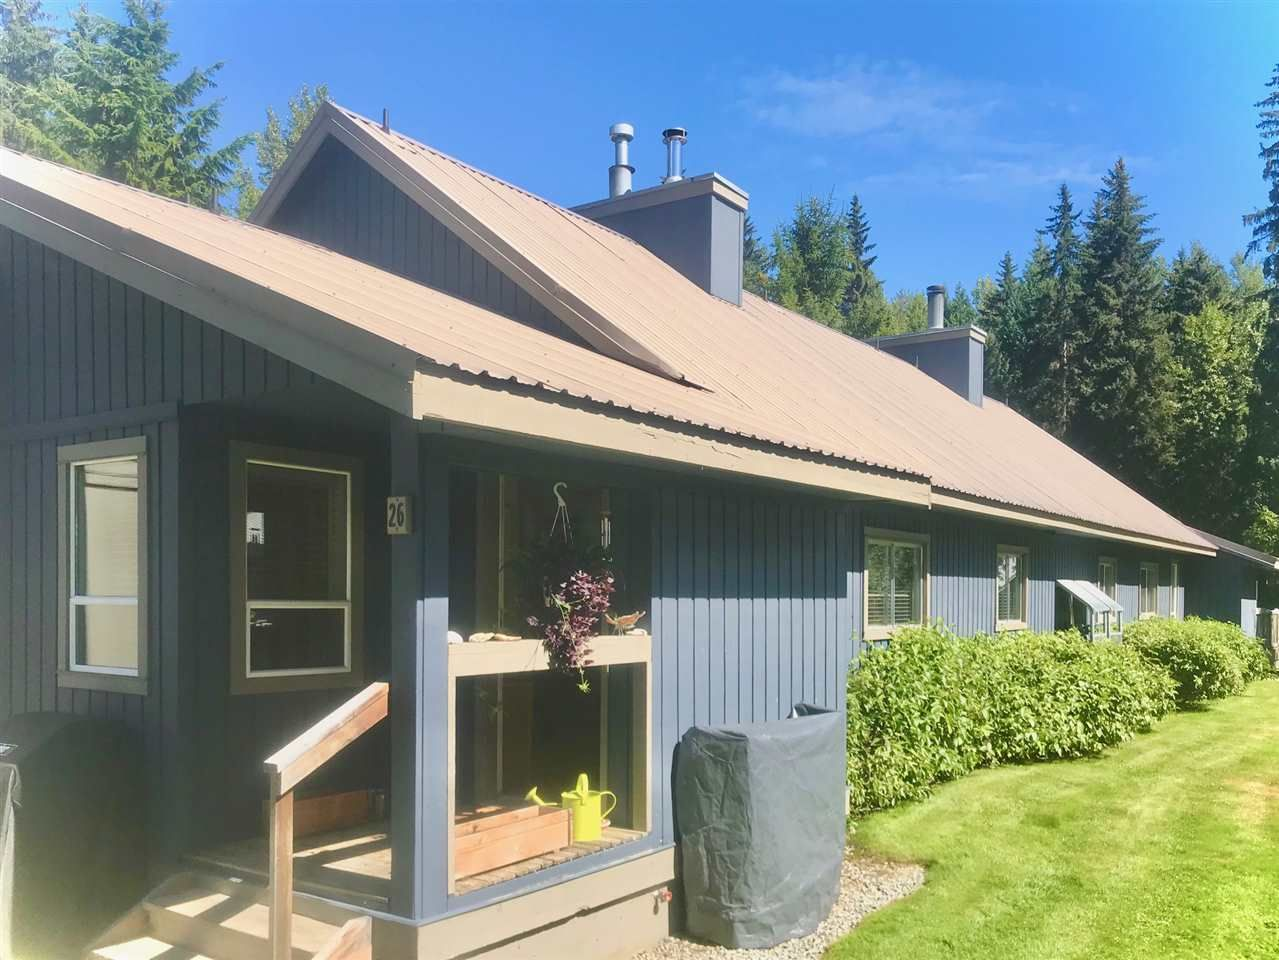 """Main Photo: 26 6800 CRABAPPLE Drive in Whistler: Whistler Cay Estates Townhouse for sale in """"ALTA LAKE RESORT"""" : MLS®# R2484569"""